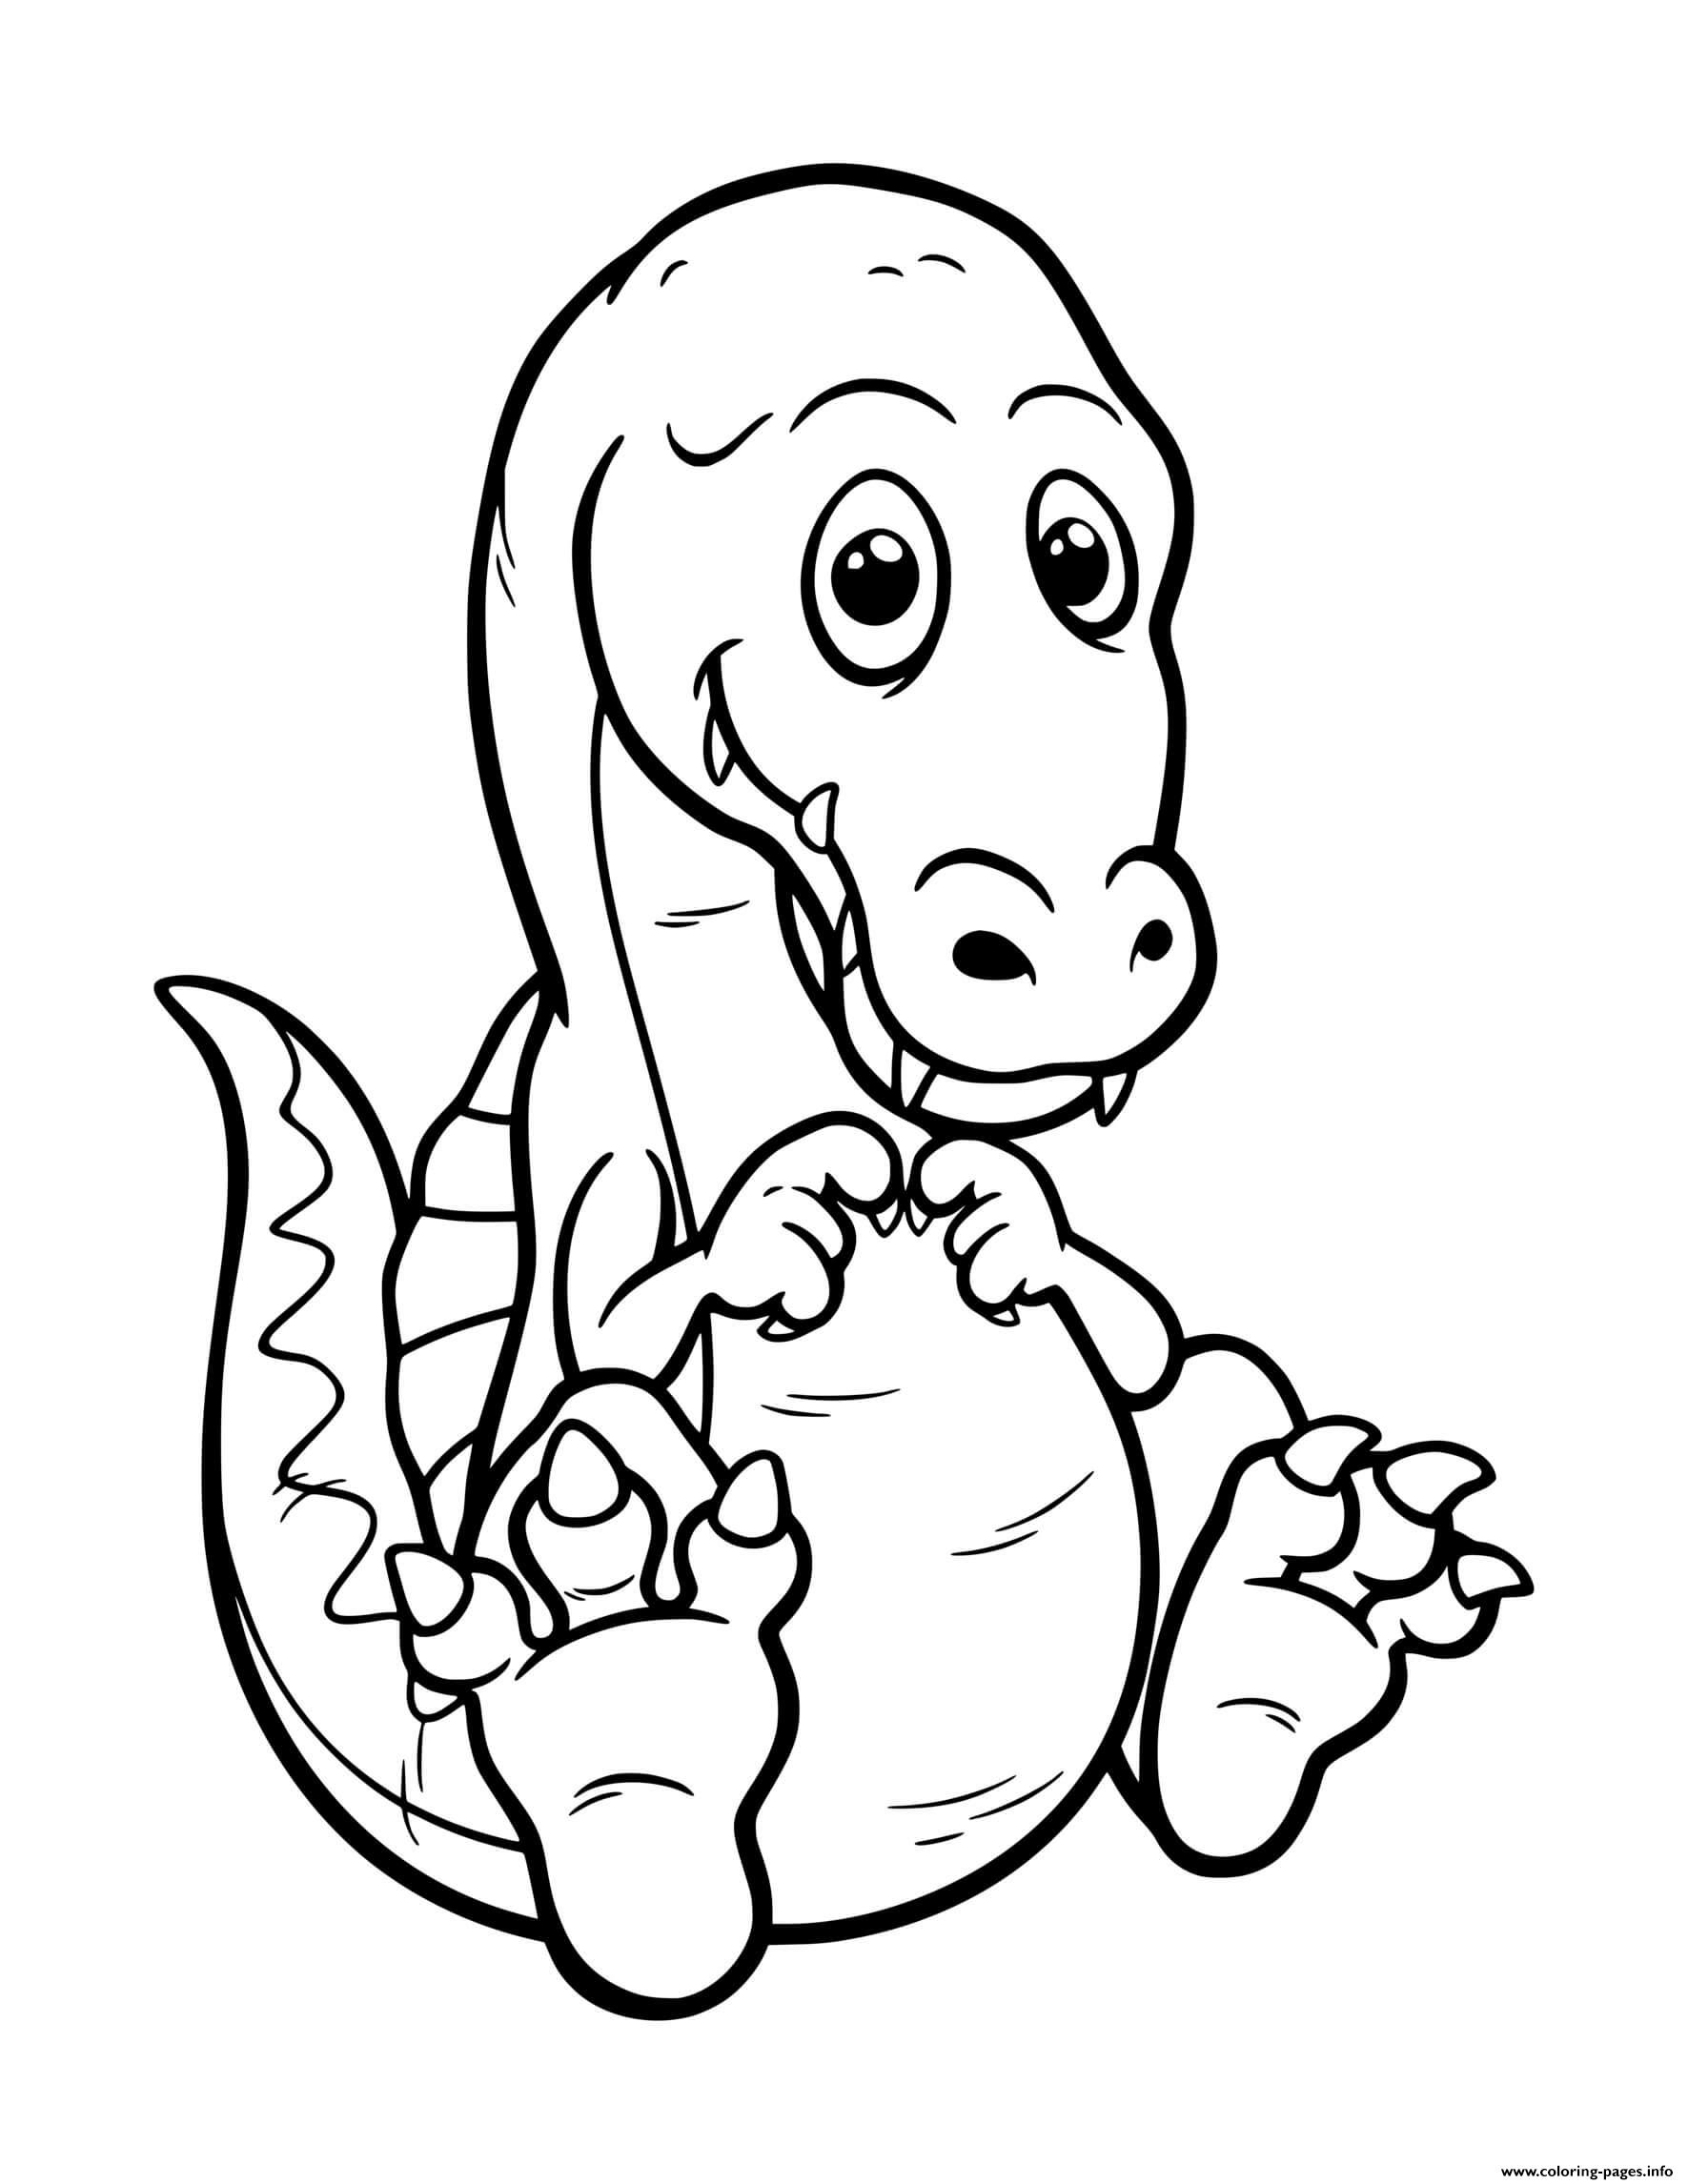 baby dinosaur coloring pages baby dinosaur coloring pages to download and print for free coloring pages dinosaur baby